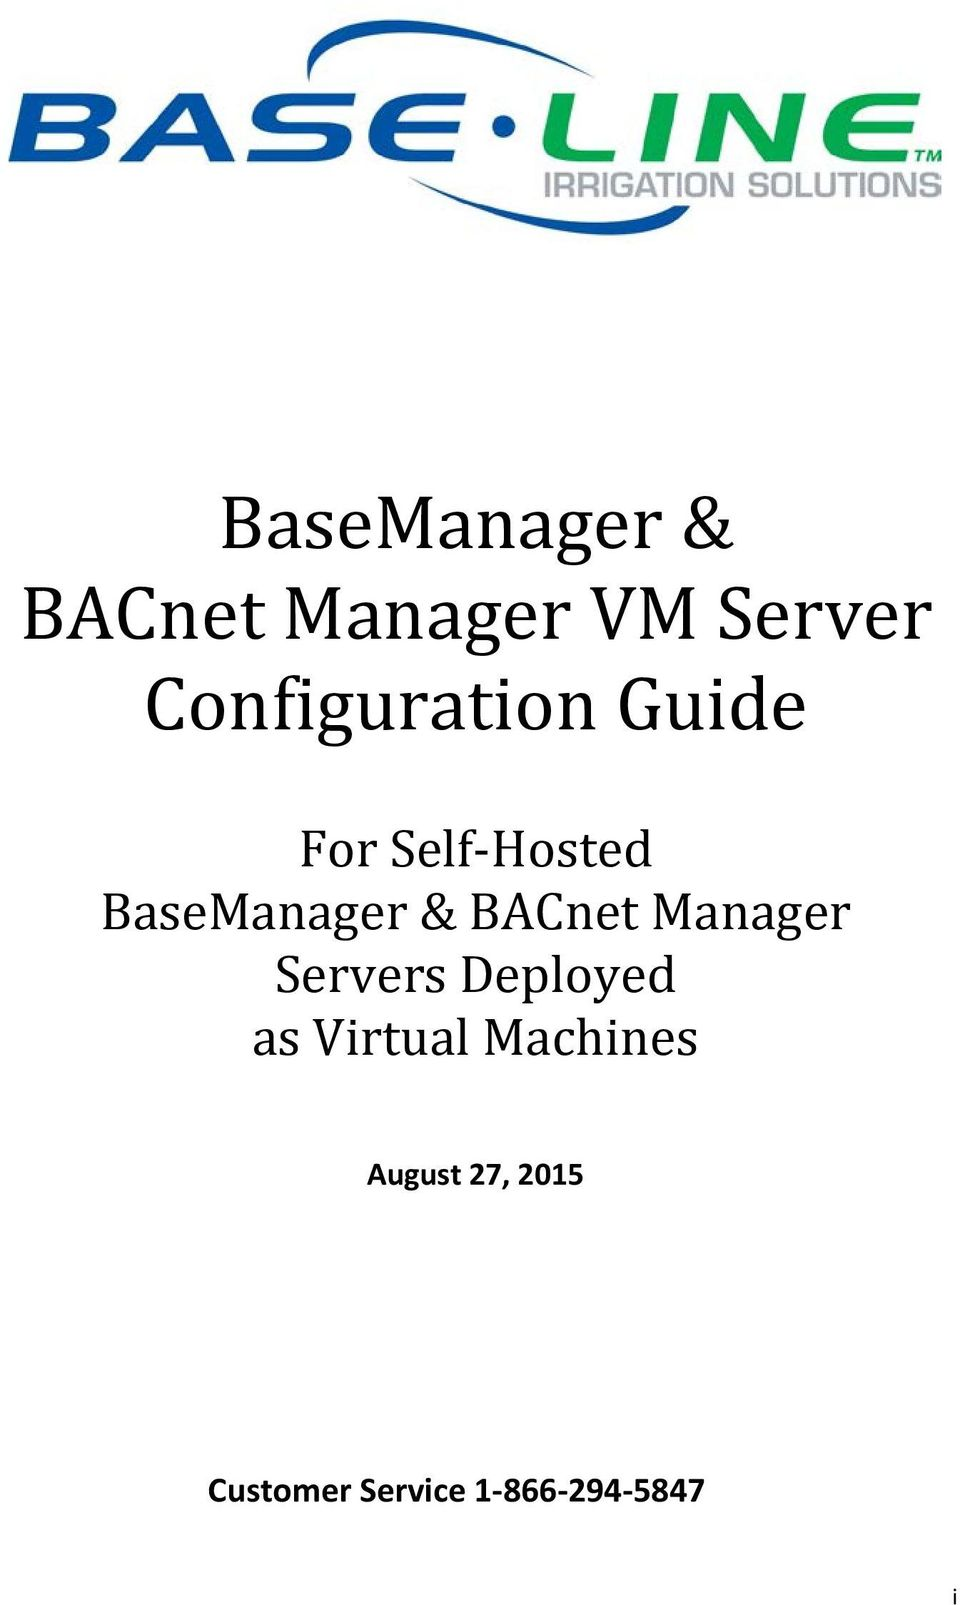 & BACnet Manager Servers Deployed as Virtual